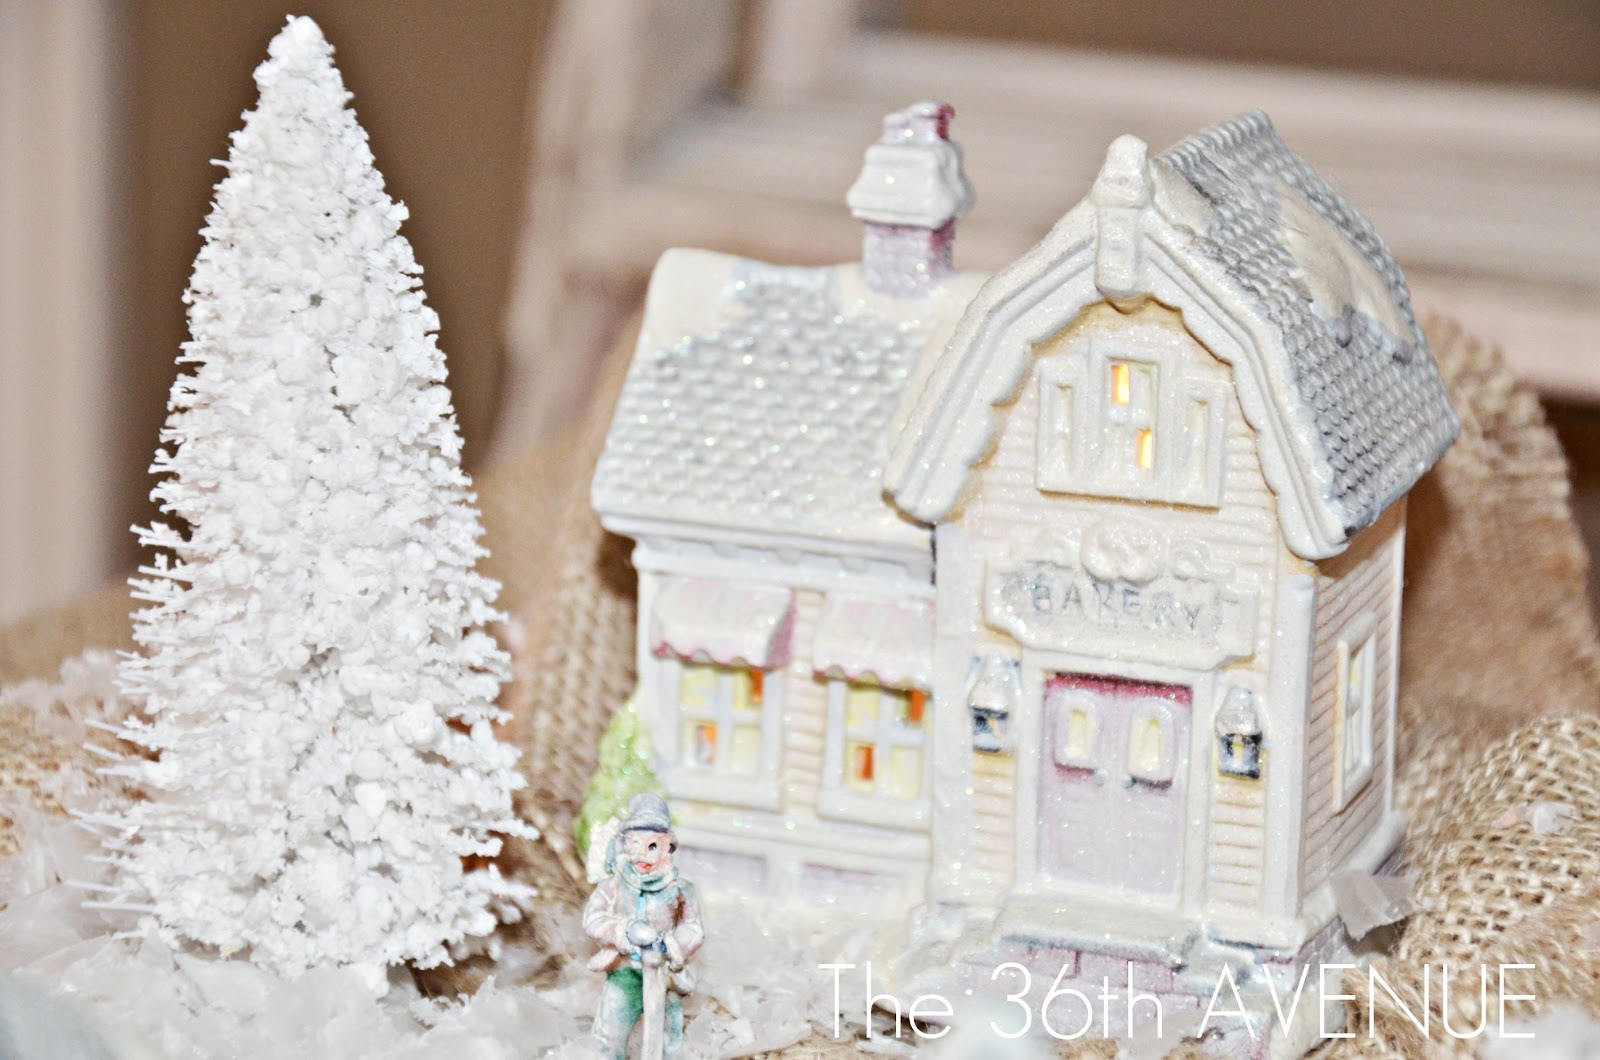 DIY Dollar Store Christmas Village - The 36th AVENUE